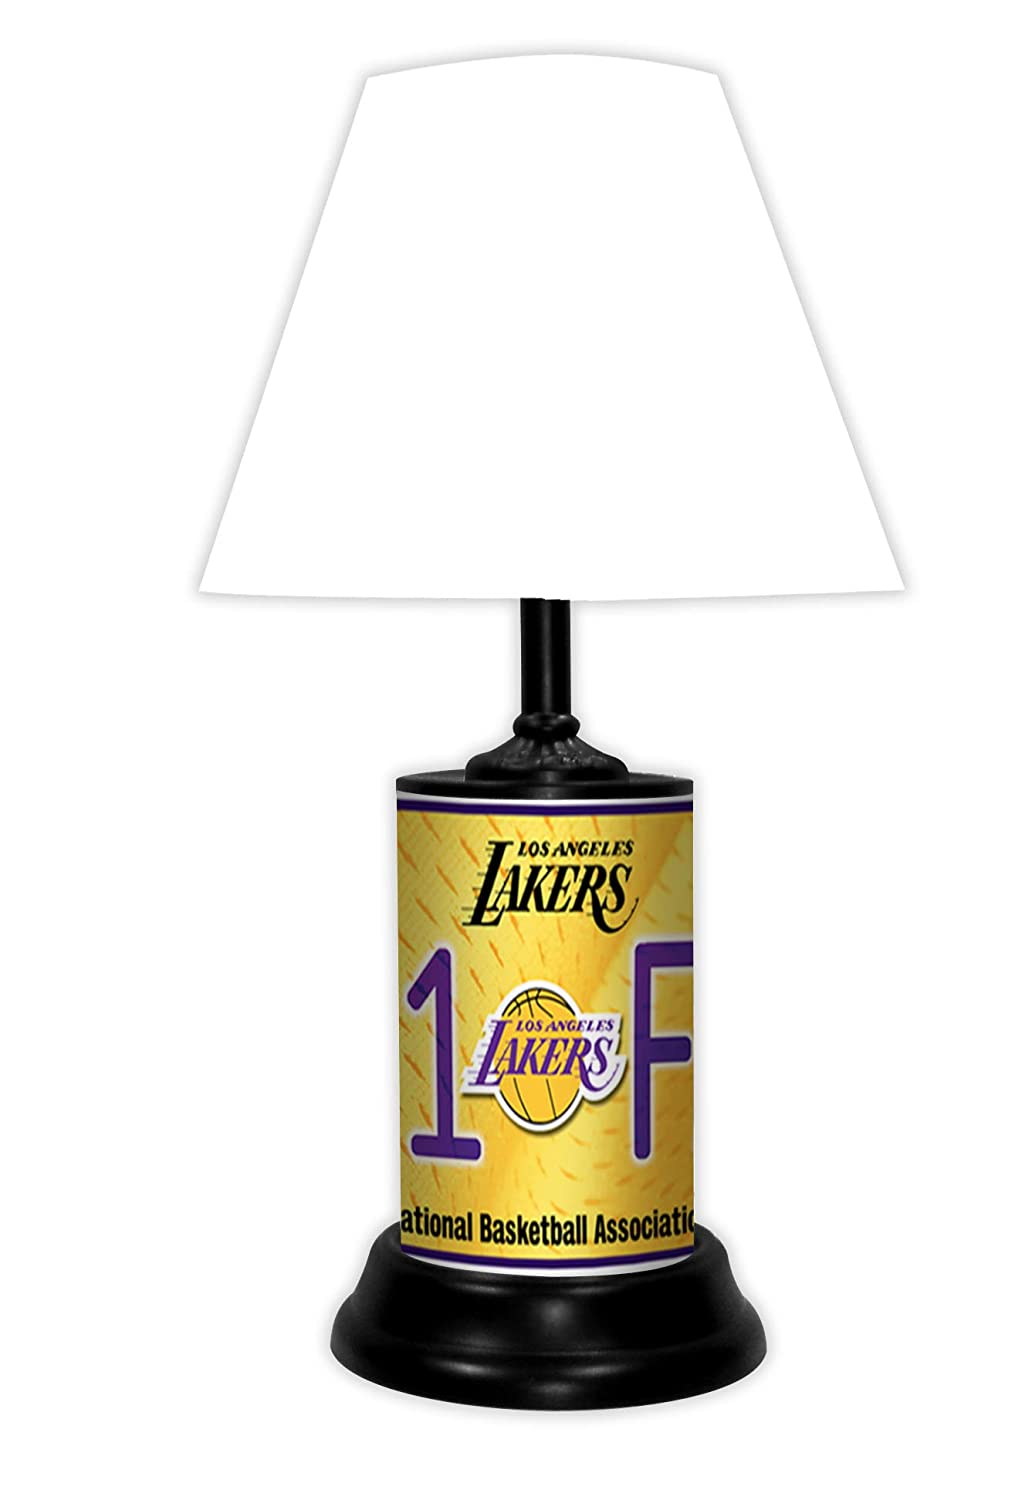 Lakers Lamp Desk//Table Lamp with White Shade